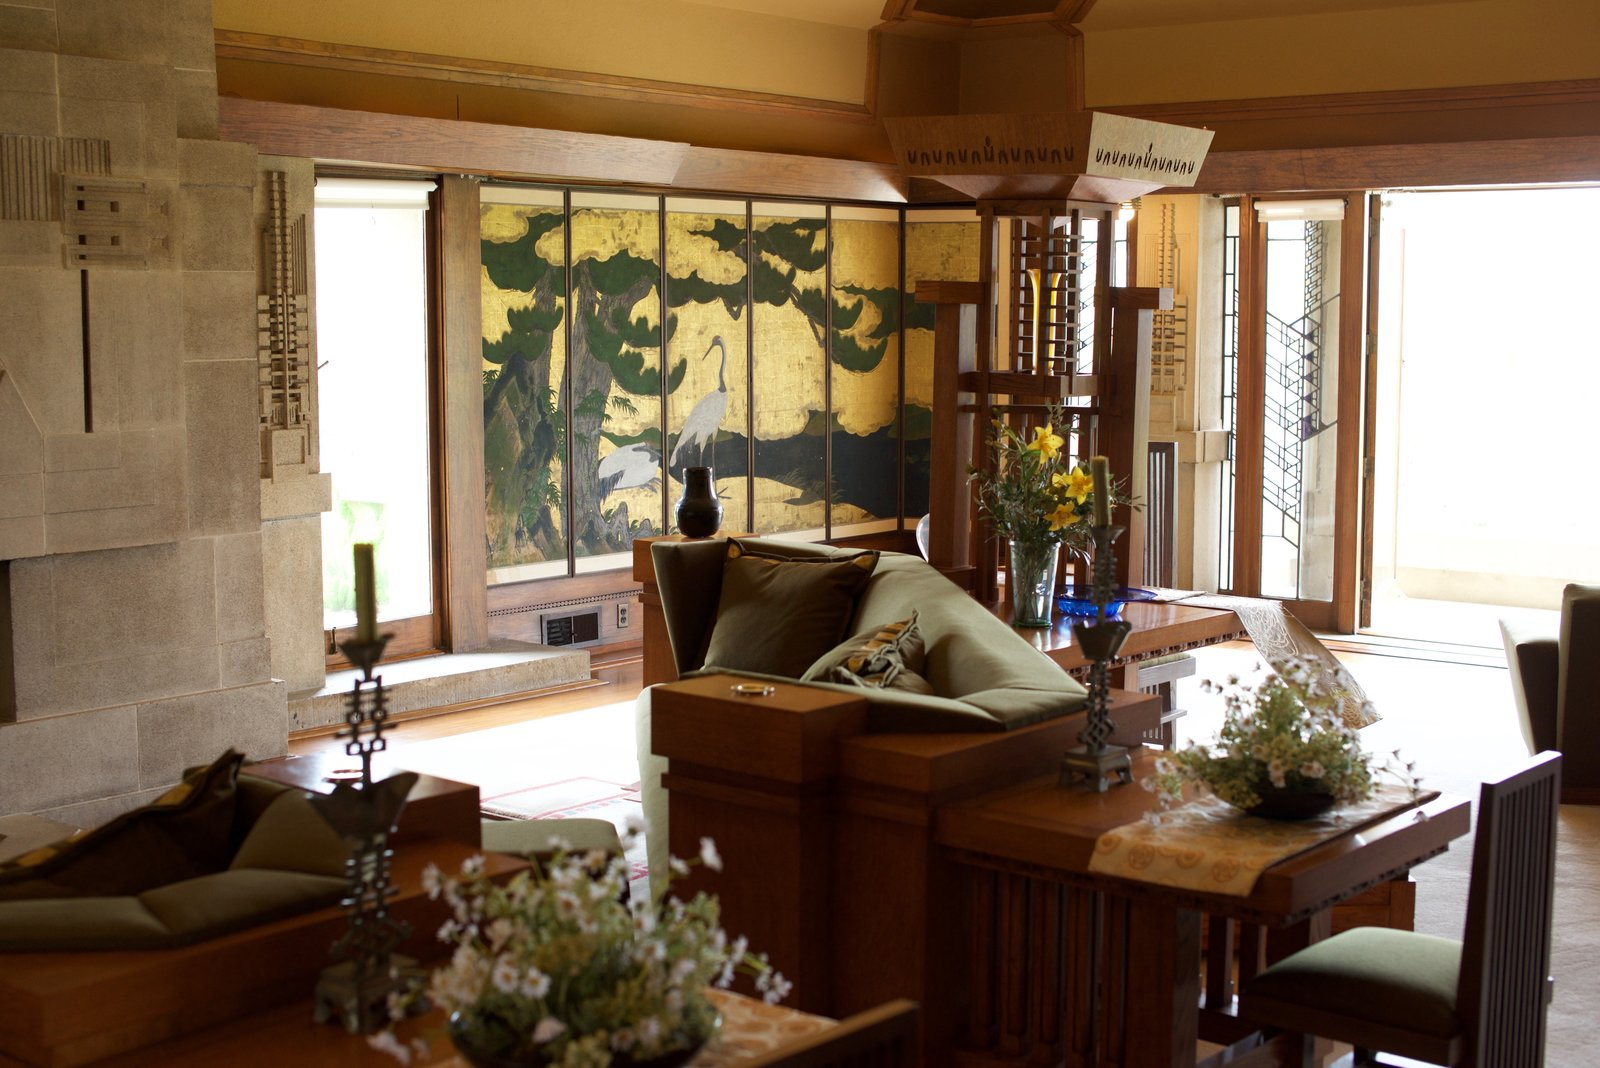 With the approval from Barnsdall, Wright incorporated Japanese influences throughout, including a set of authentic 18th-century Japanese screens. However, since the originals were stolen during the house's dark years, the ones seen here are reproductions.  Photo 5 of 14 in Iconic Perspectives: Frank Lloyd Wright's Hollyhock House